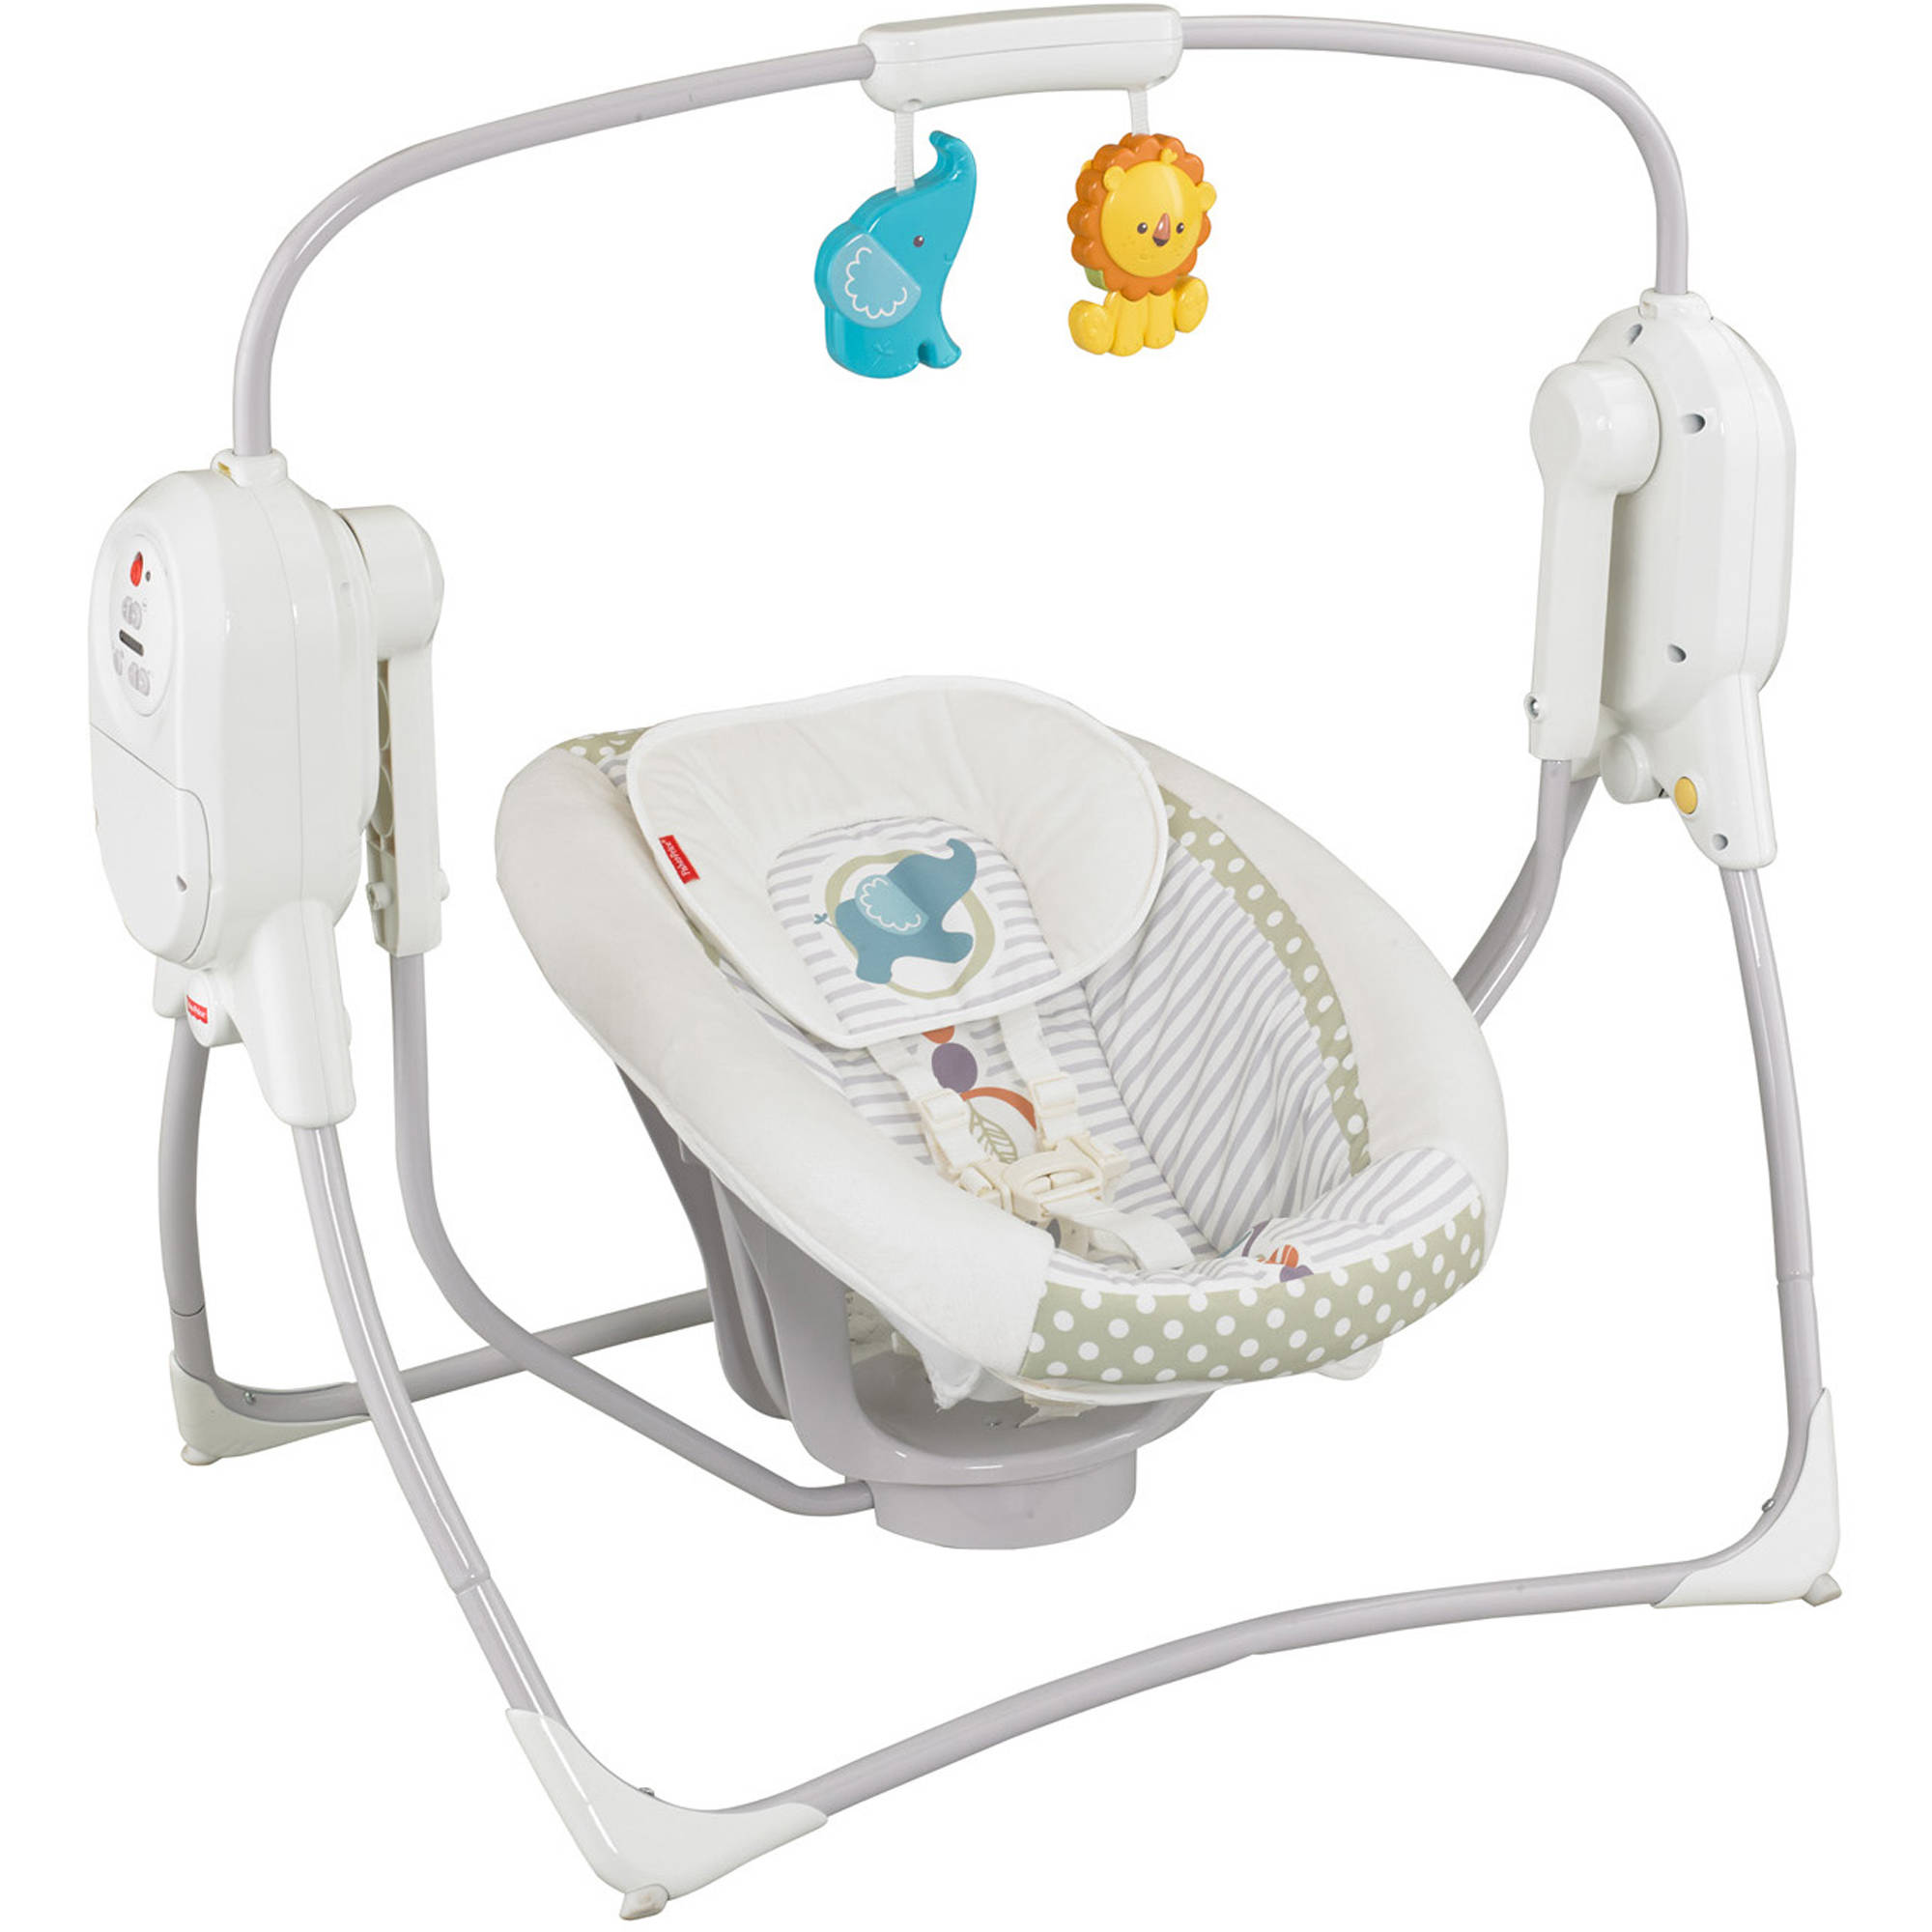 Fisher-Price SpaceSaver Cradle & Swing, White